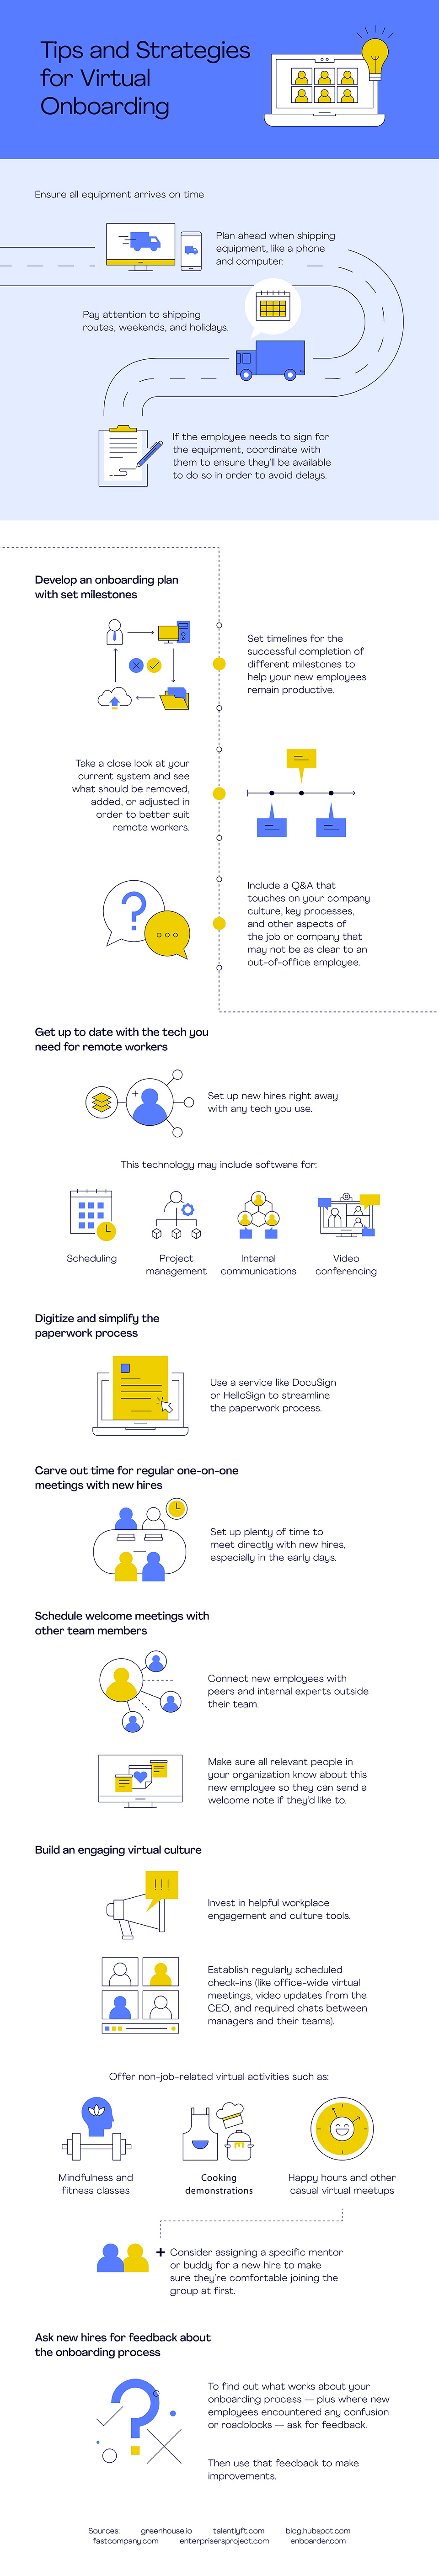 Tips and Strategies for Virtual Onboarding